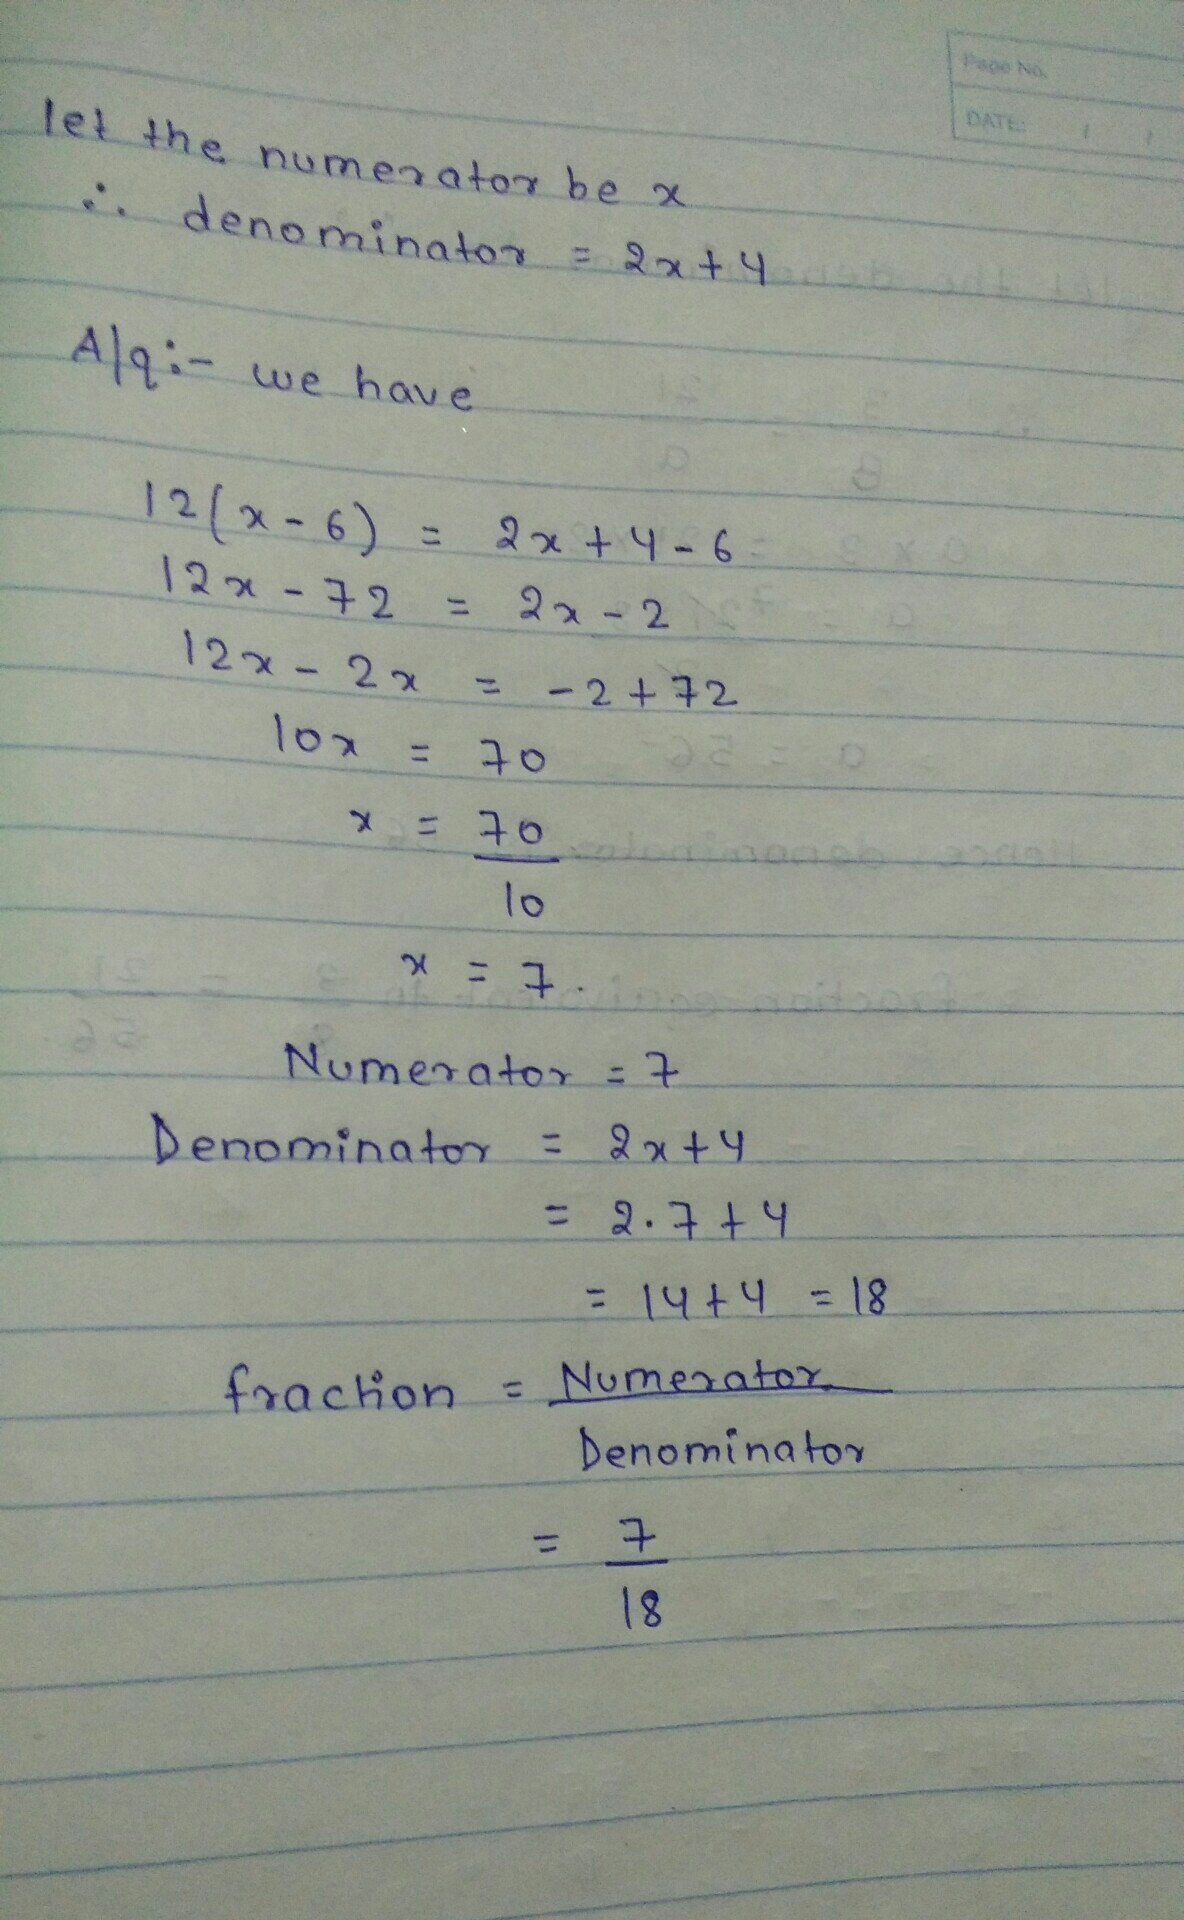 The Denominator Of A Fraction Is 4 More Than Twice Its